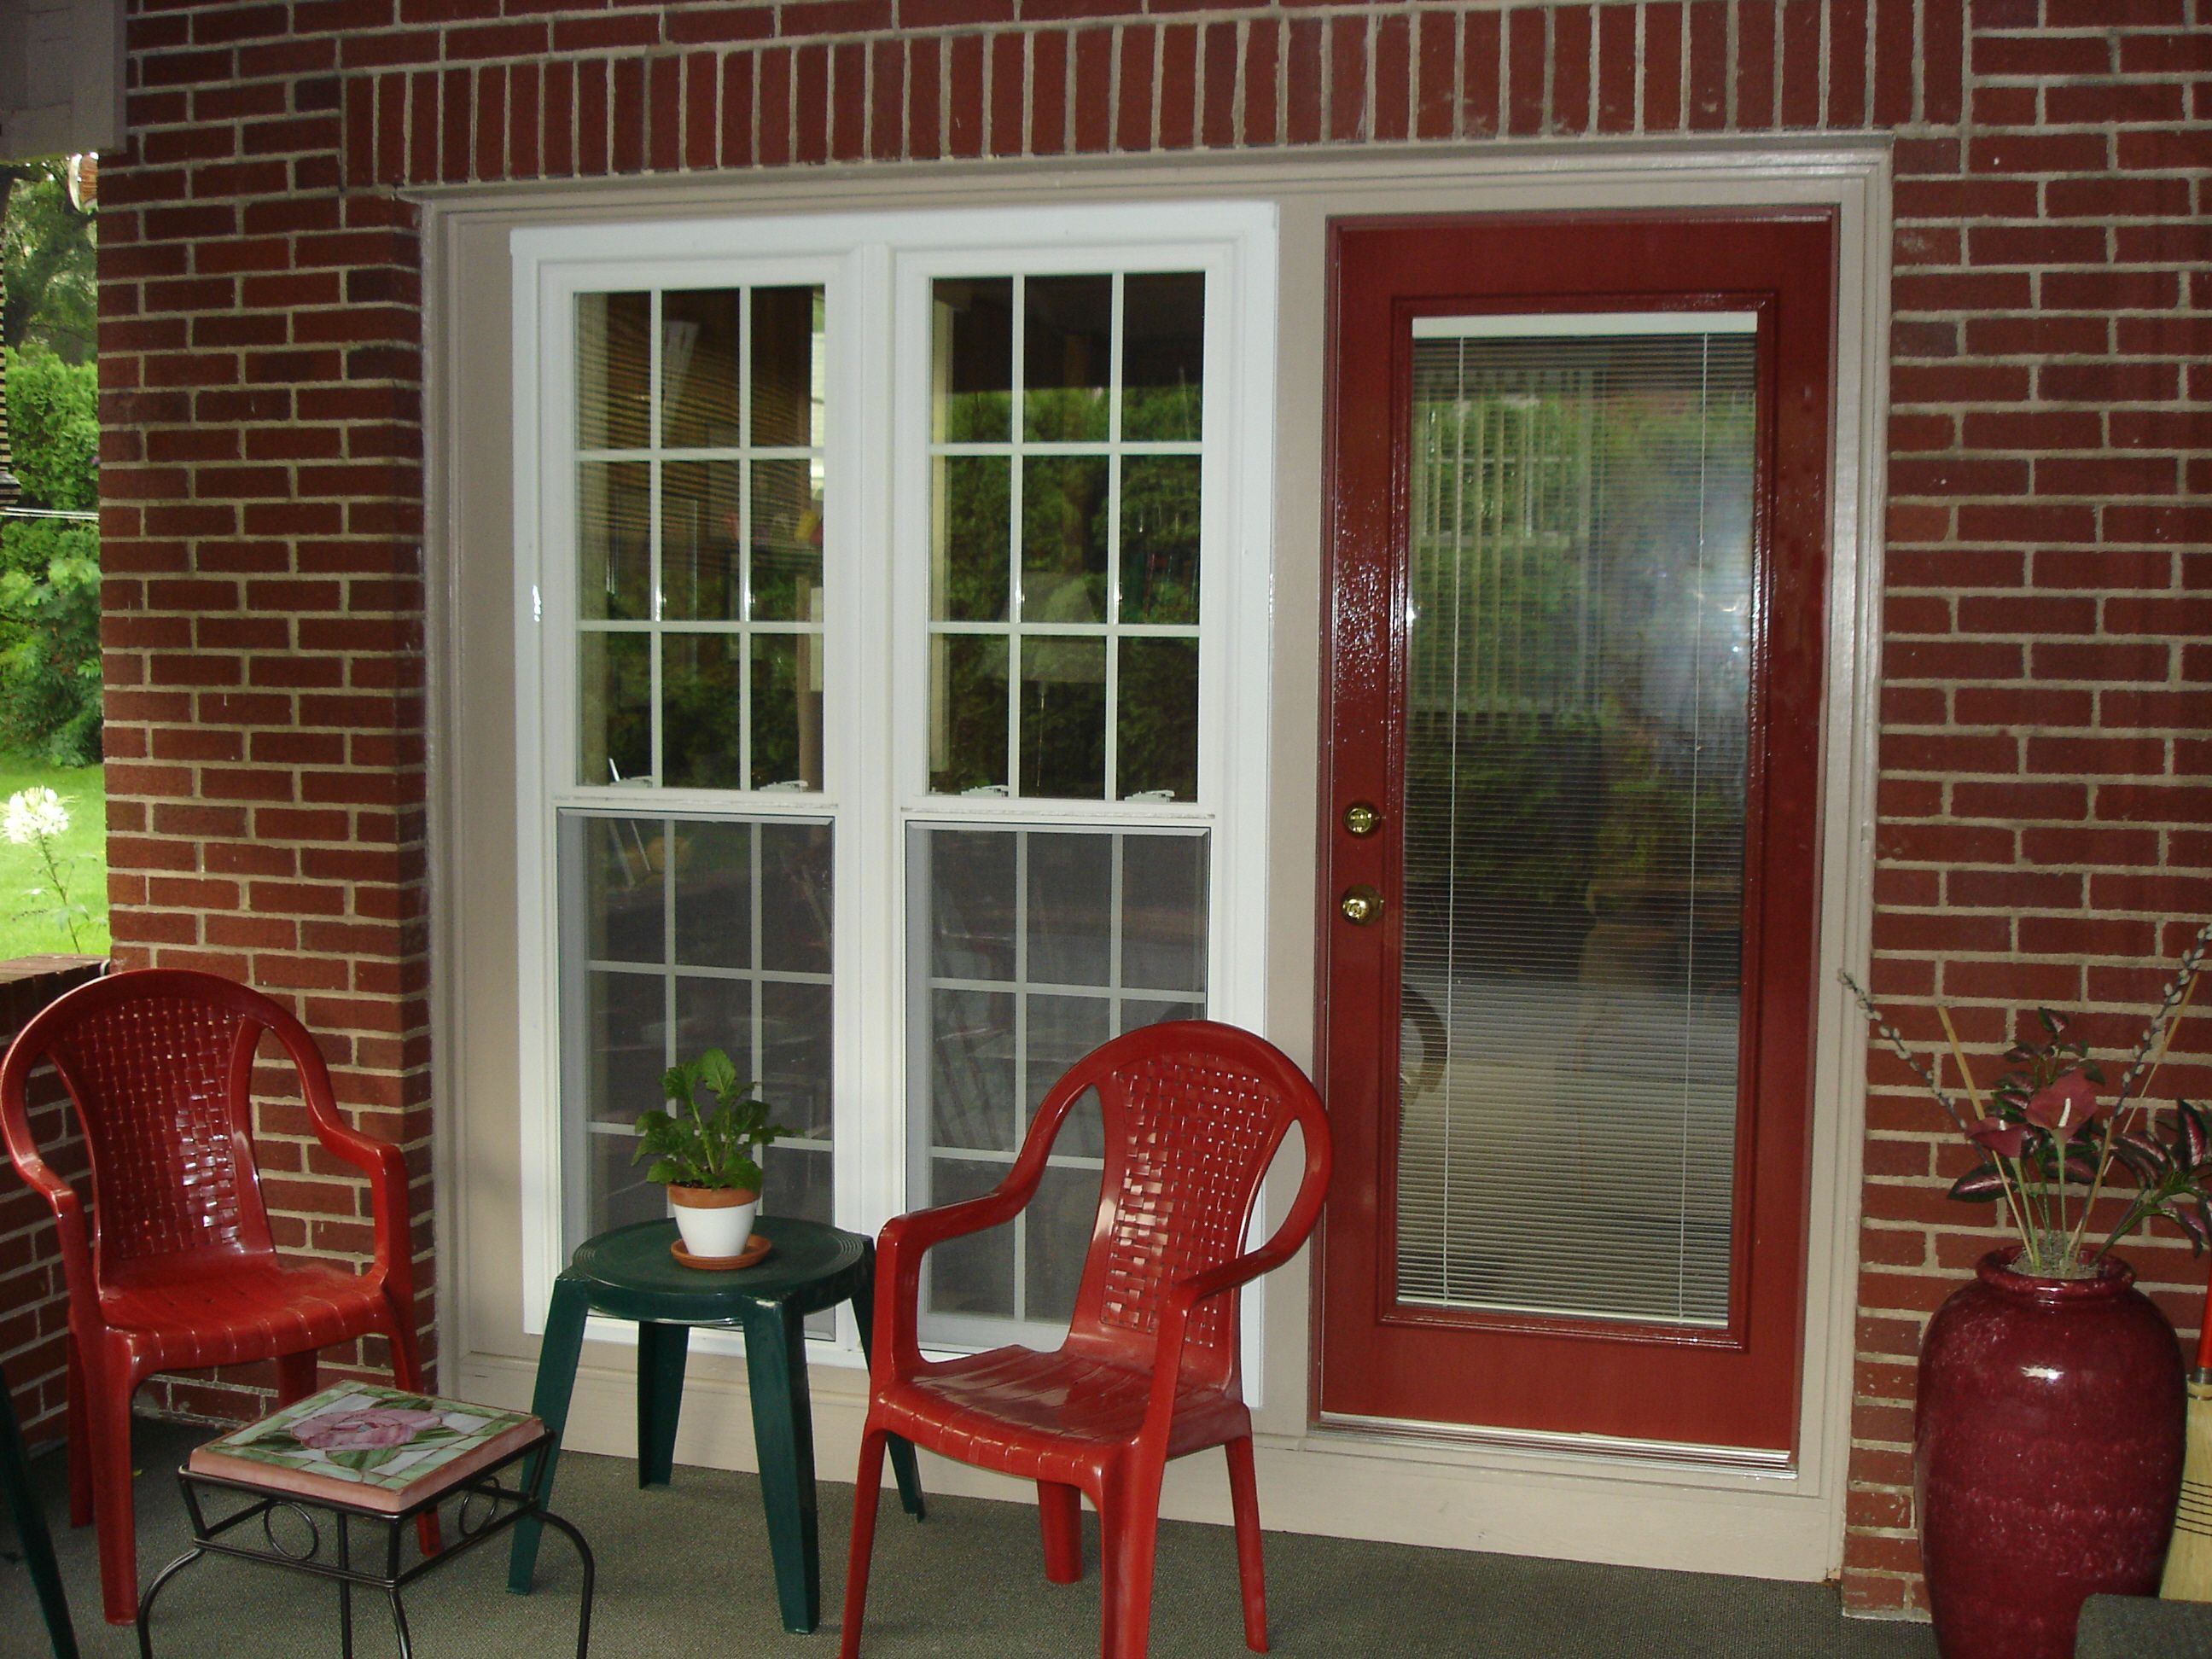 Replace a window with a door - Replace Garage Door With Windows And Door